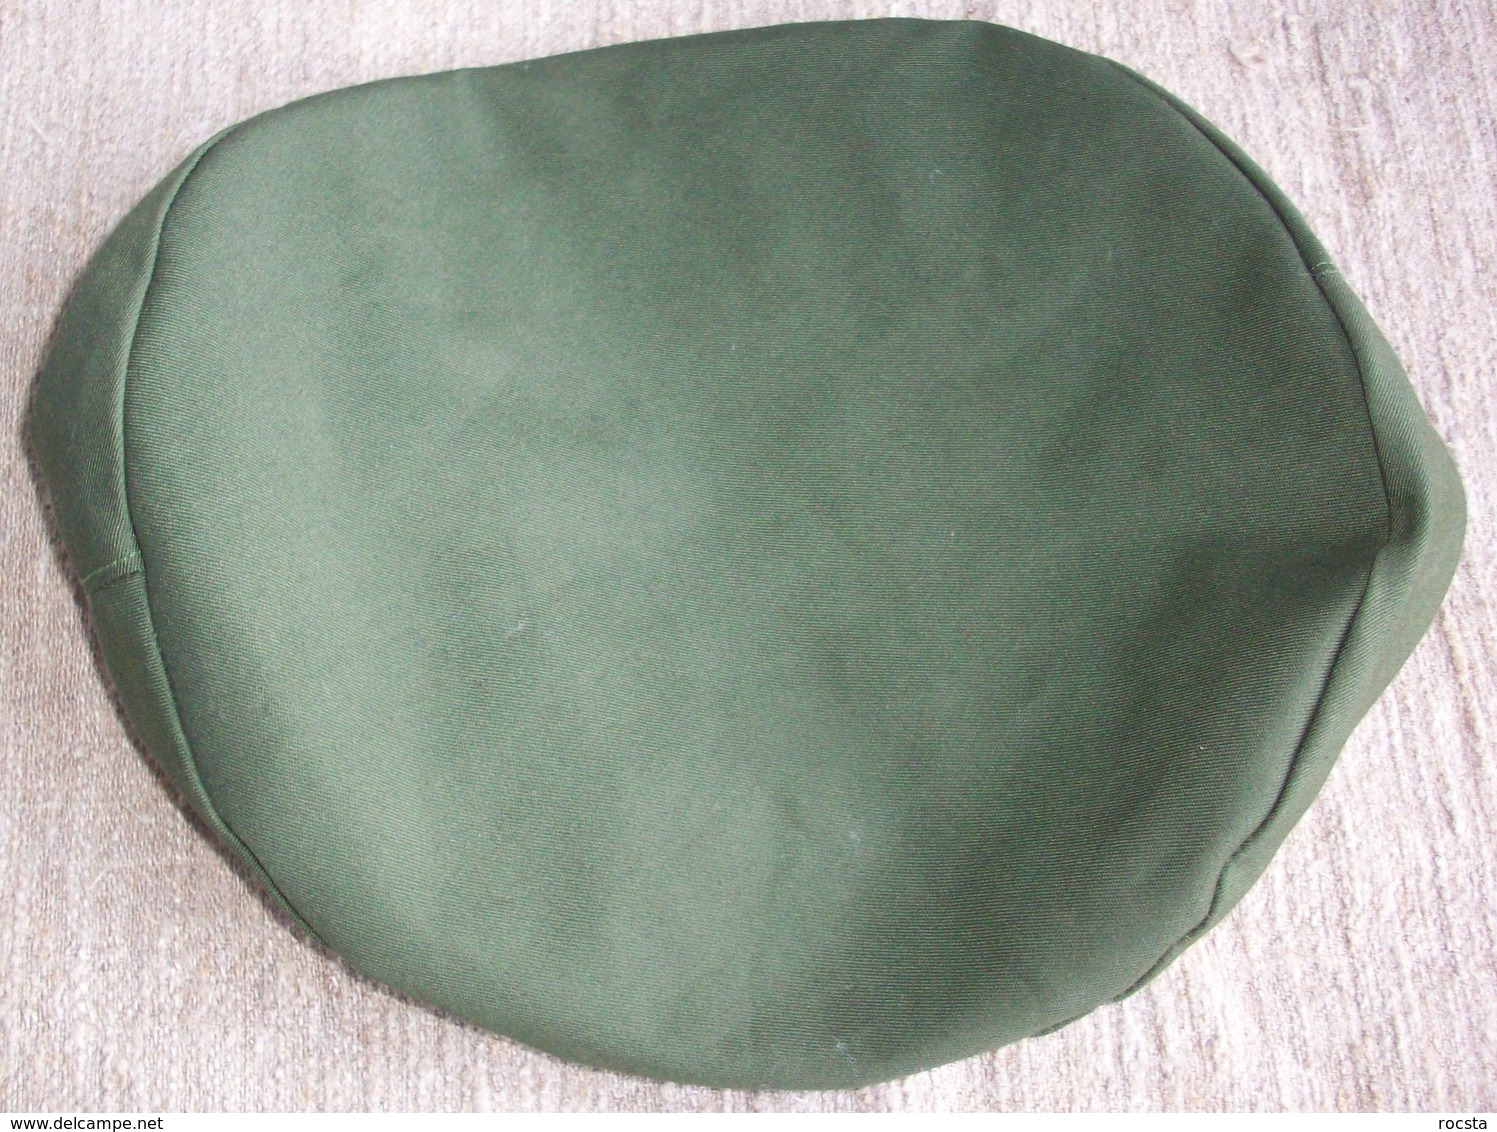 Military Style Green Beret - Che Gevara Cuba - Casques & Coiffures